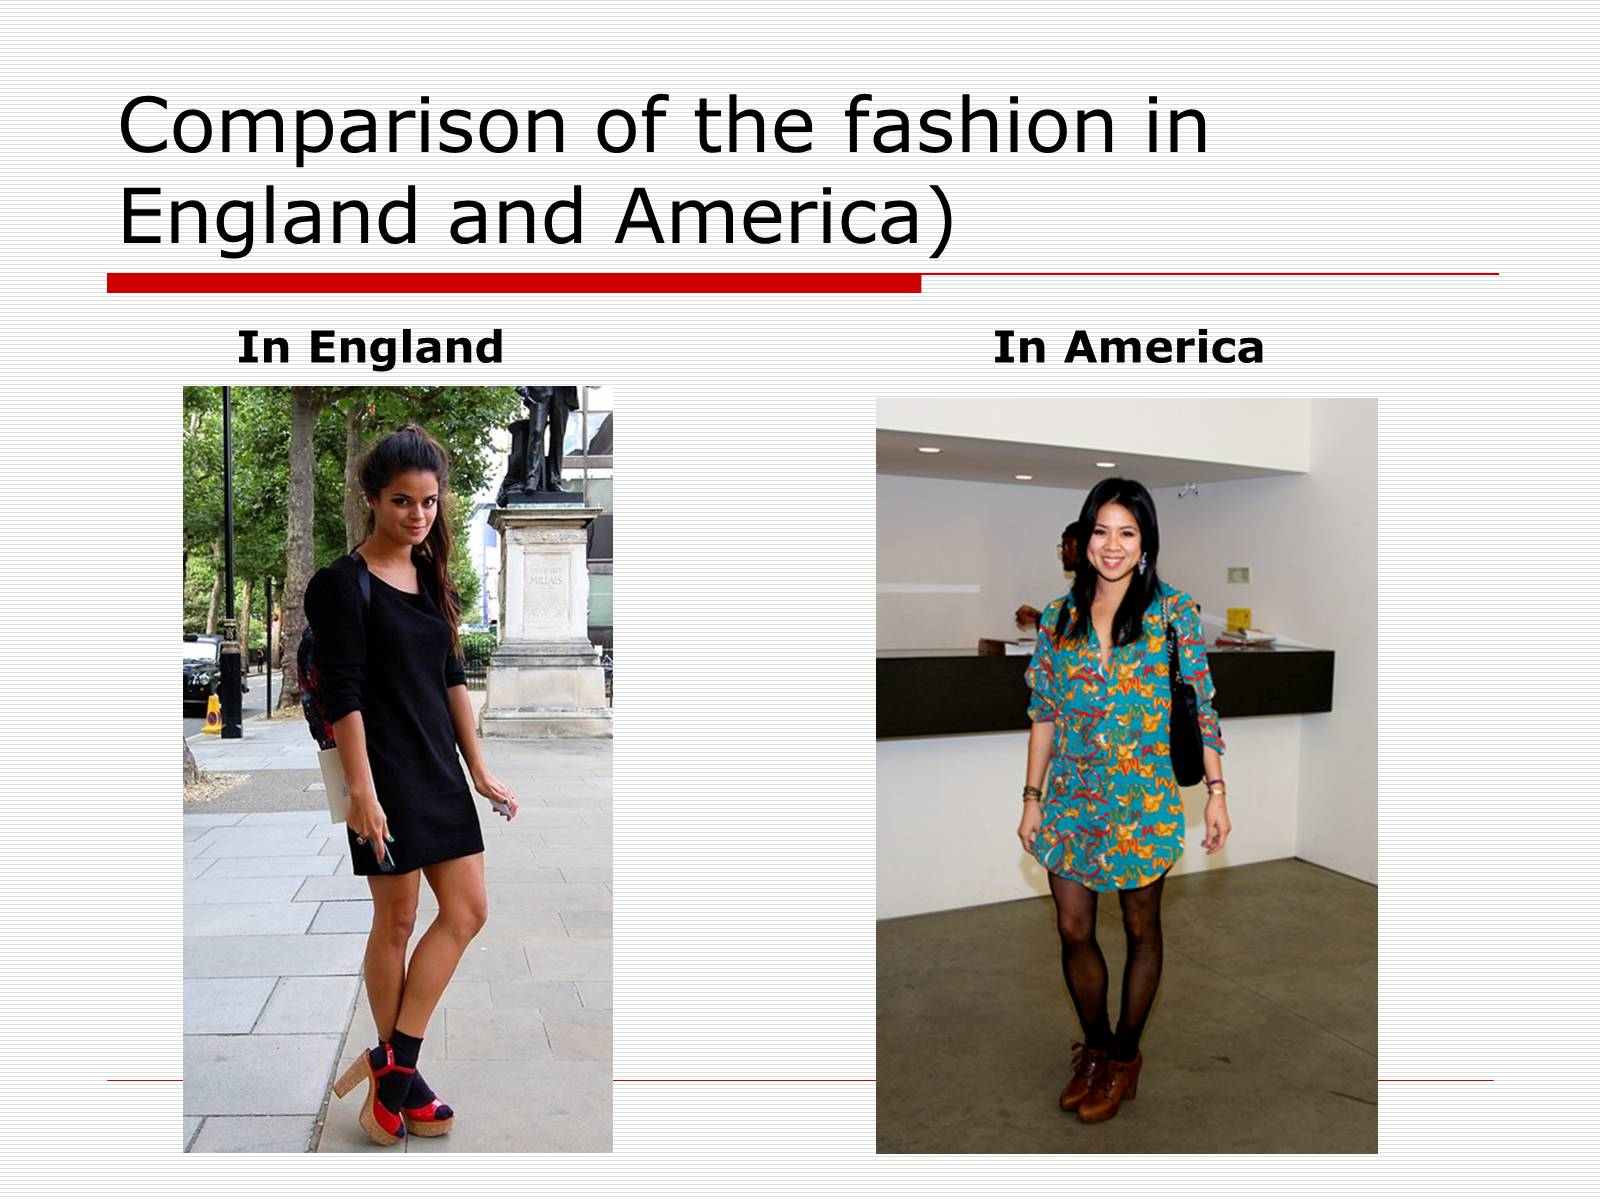 Презентація на тему «Comparison of the fashion in England and America» - Слайд #10